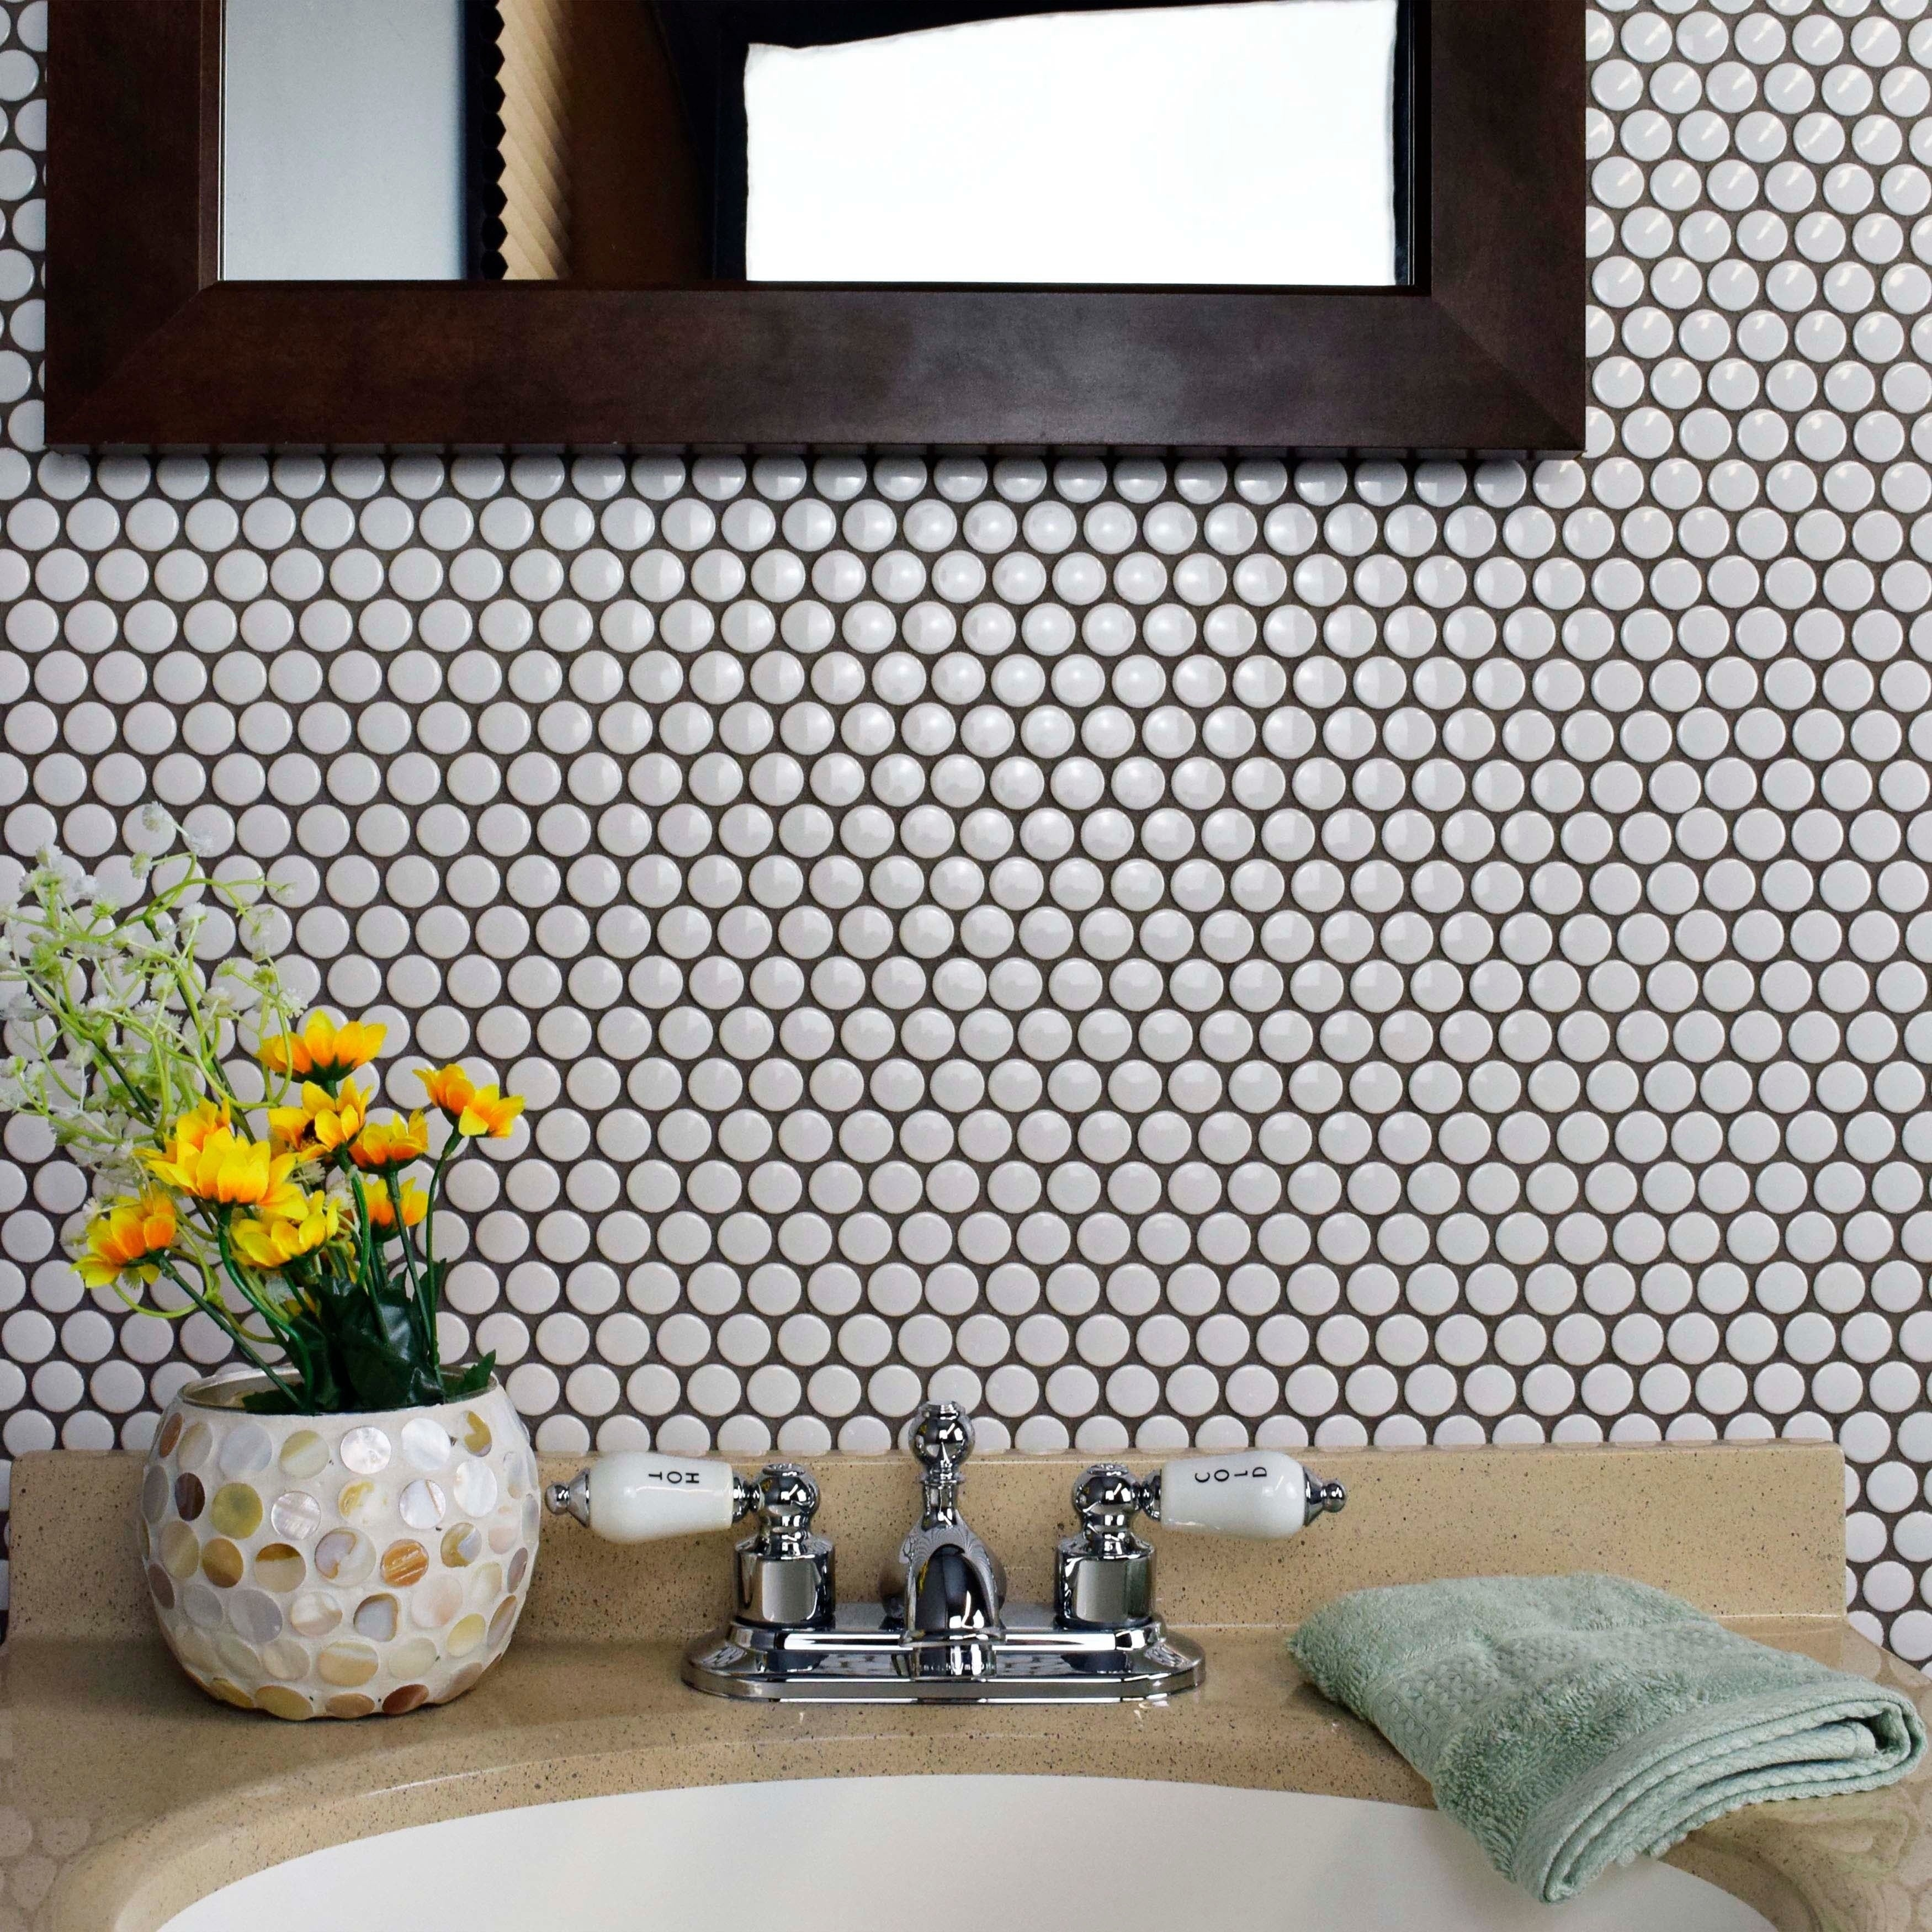 SomerTile 11.5x11.5-in Victorian Penny 3/4-in White Porcelain Mosaic Tile  (Pack of 10) - Free Shipping Today - Overstock.com - 12185957